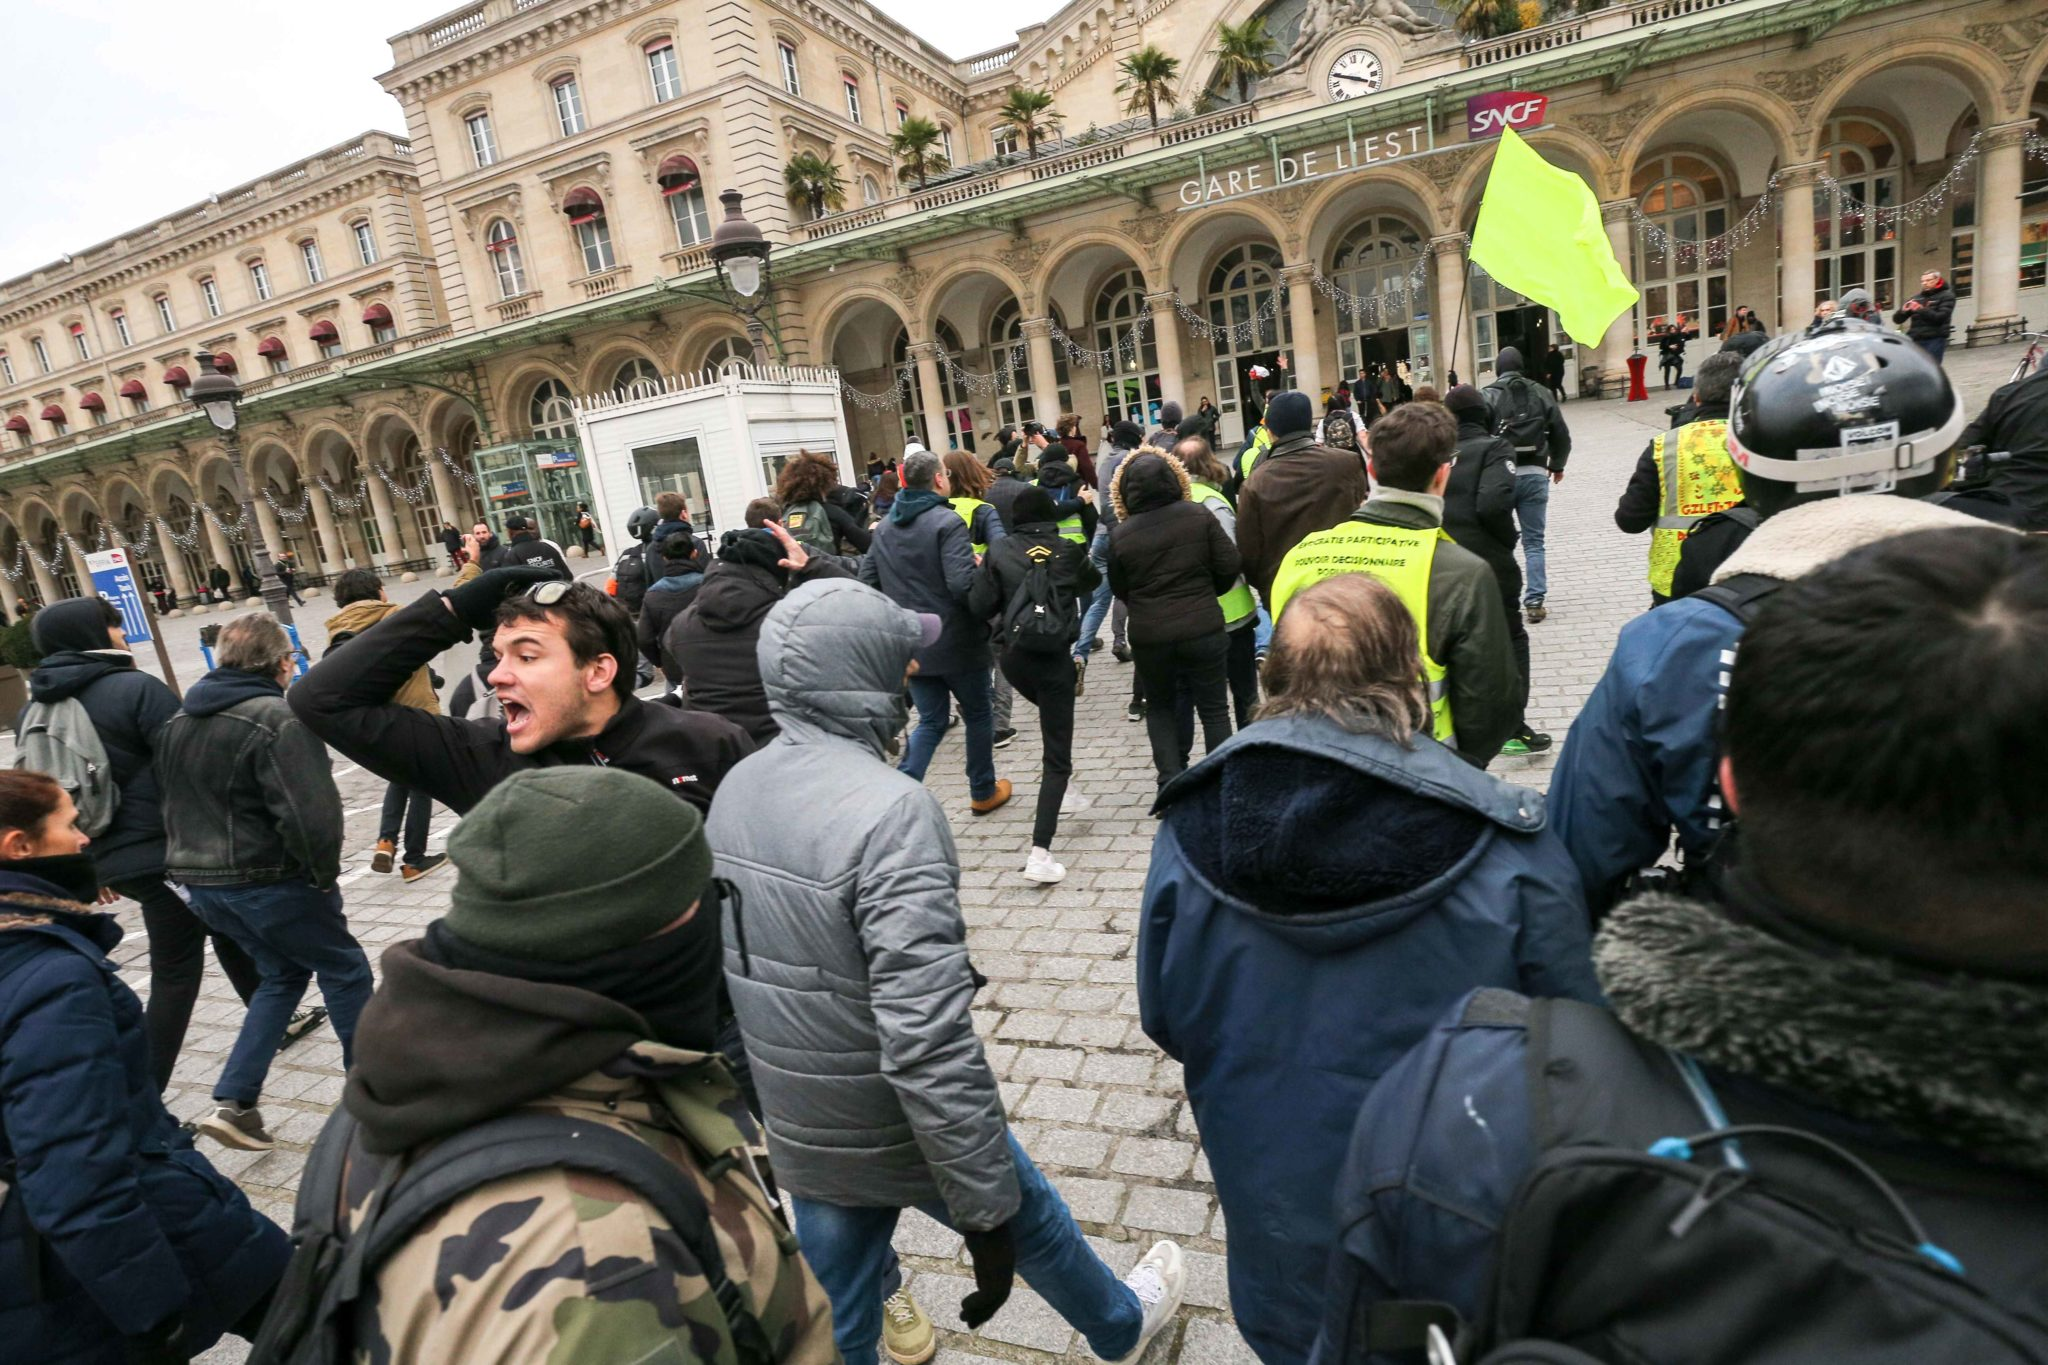 Demonstrators break into the Gare de l'Est train station in Paris during a demonstration called by French national trade union General Confederation of Labour (CGT) against the pension reform on January 4, 2020. After 30 days of strike, unions opposed to